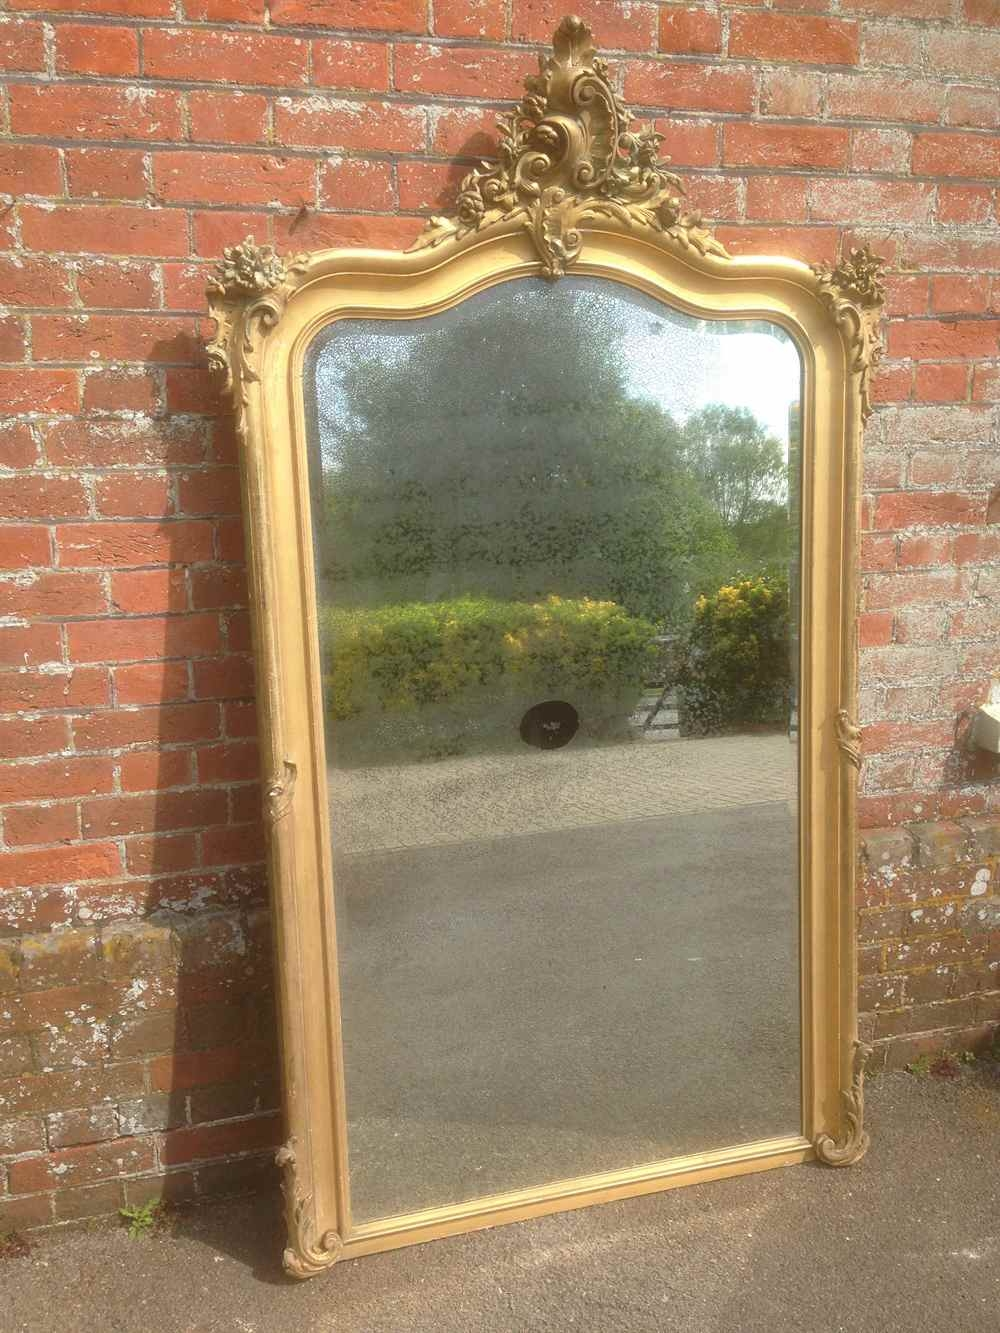 A Wonderful Large Antique 19th Century French Original Carved Wood Intended For Antique Gilt Mirrors (Image 3 of 15)